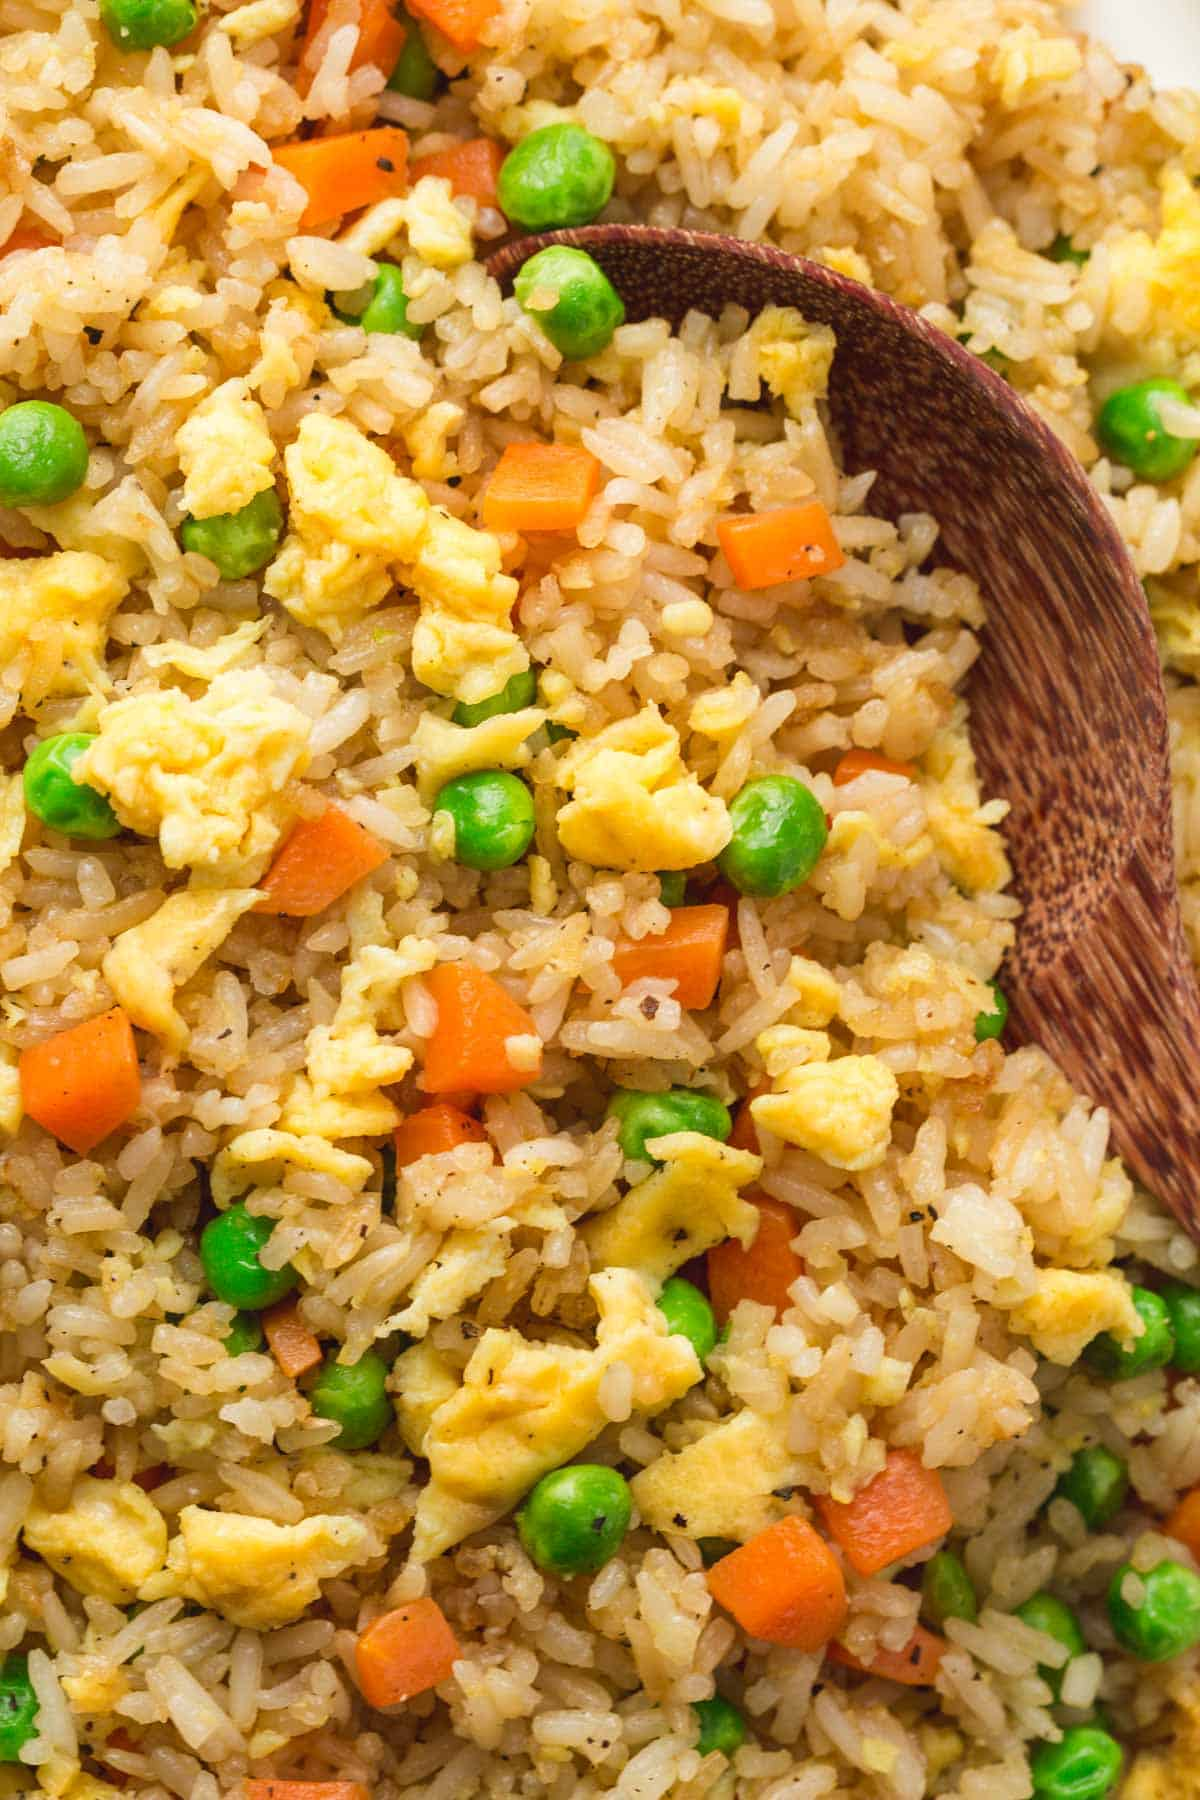 A close up shot of fried rice and a serving spoon